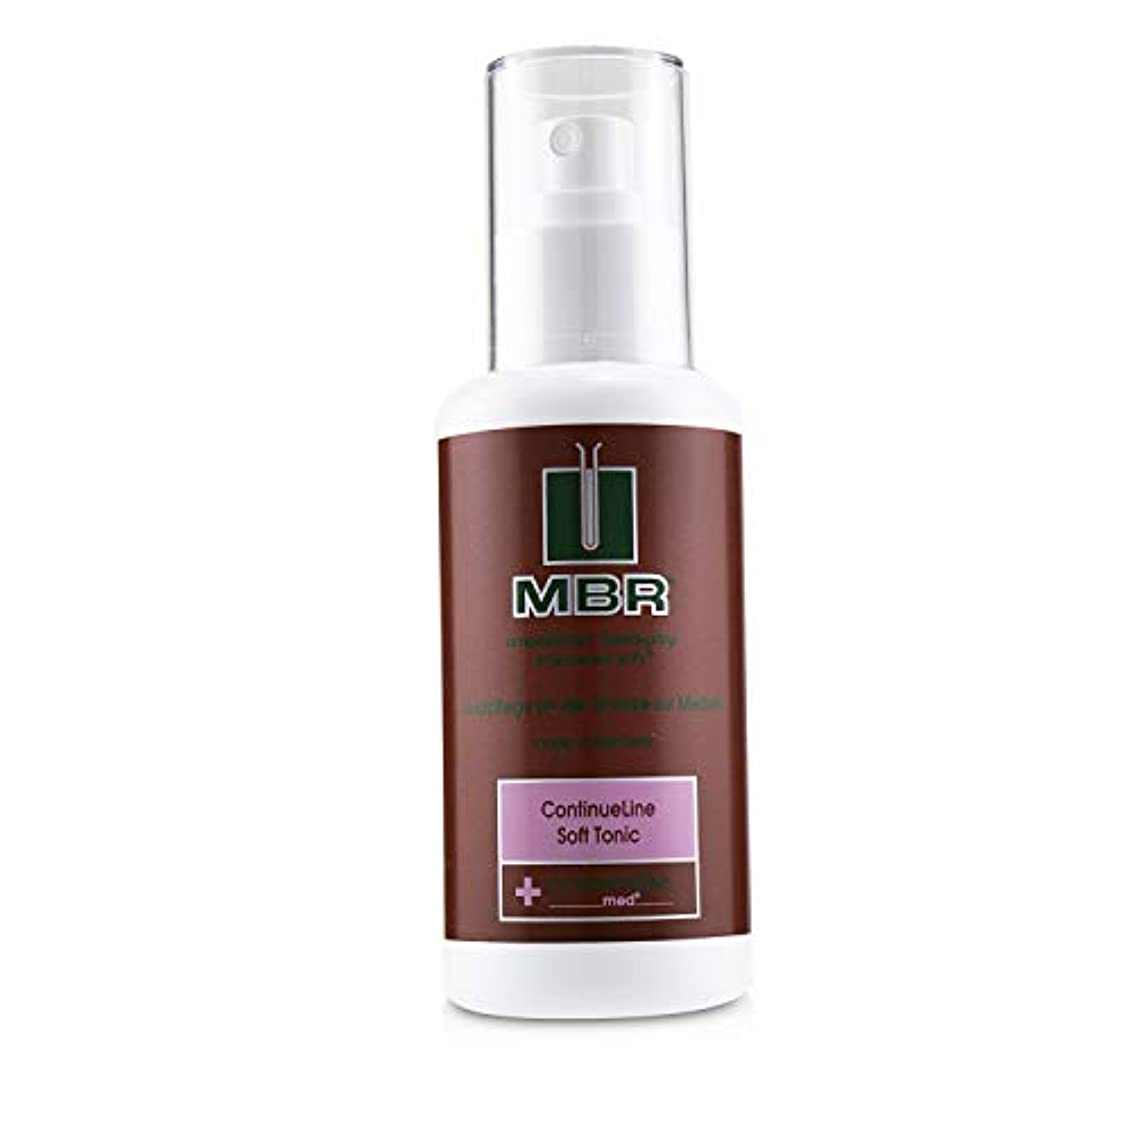 添加演劇トラブルMBR Medical Beauty Research ContinueLine Med ContinueLine Soft Tonic 150ml/5.1oz並行輸入品